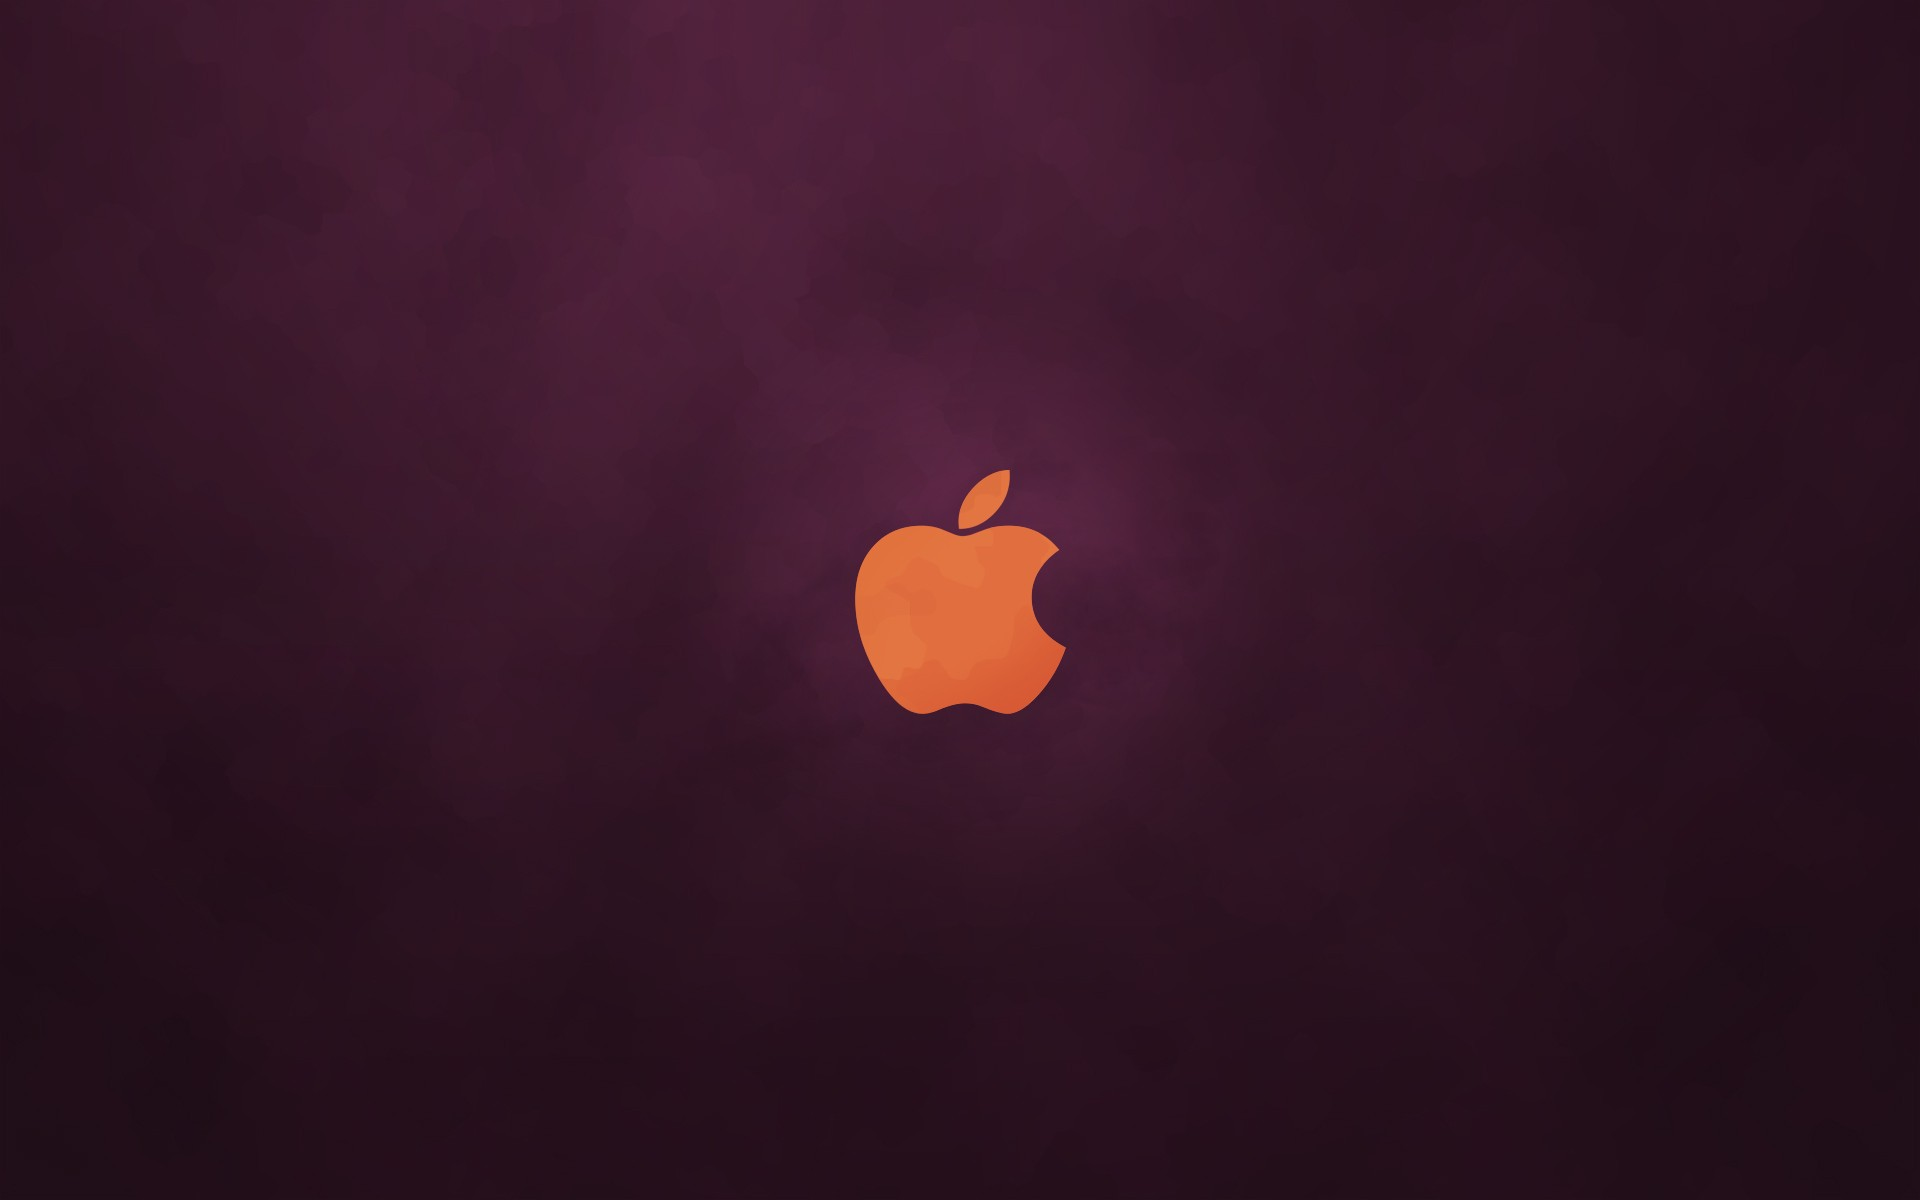 3d Animated Wallpaper For Mac Apple Ubuntu Colors Wallpapers Apple Ubuntu Colors Stock